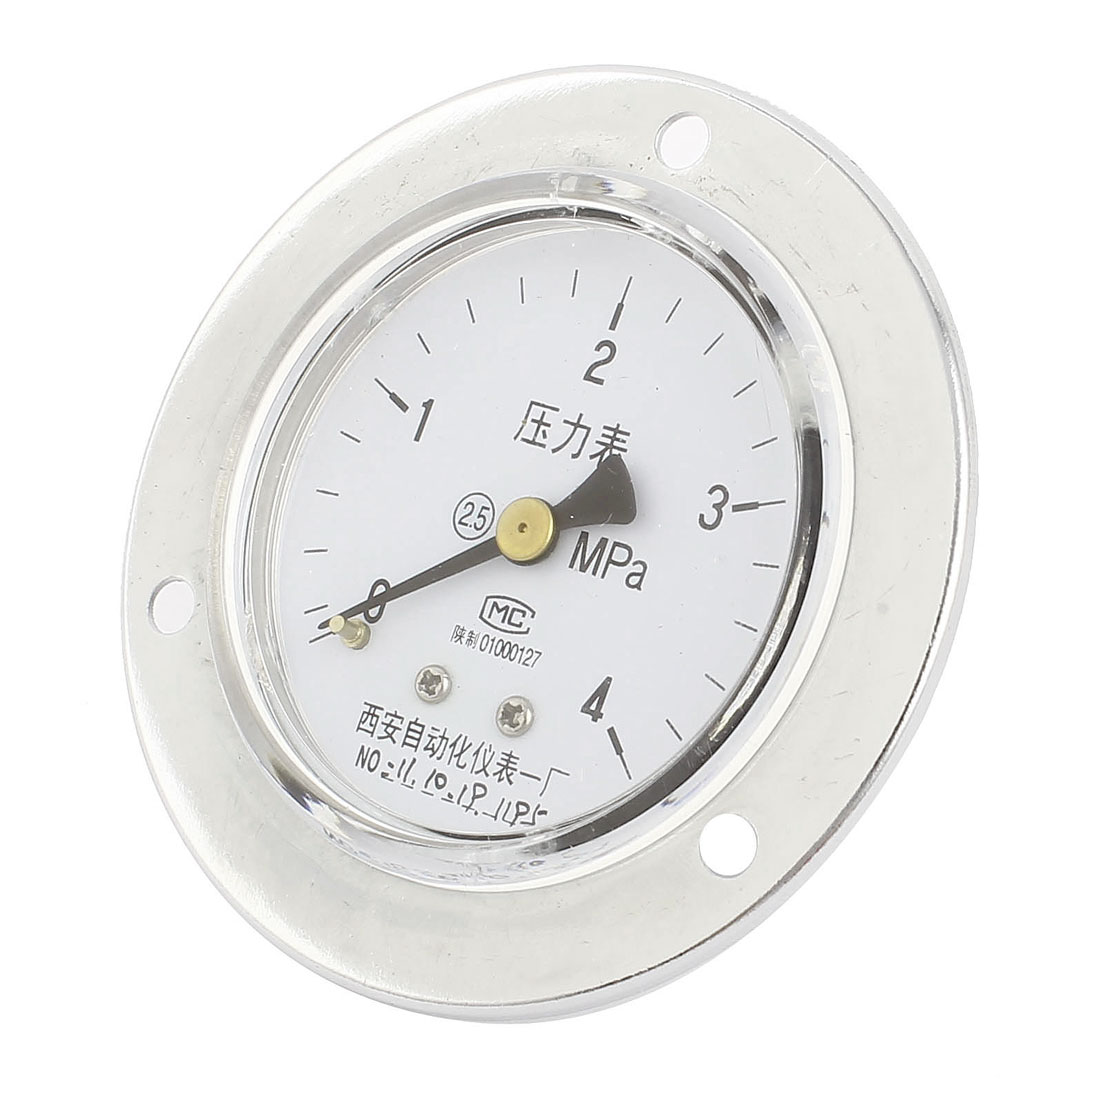 13mm Male Thread Universal Water Air Vacuum Pressure Meter Gauge 0-4MPa 60mm